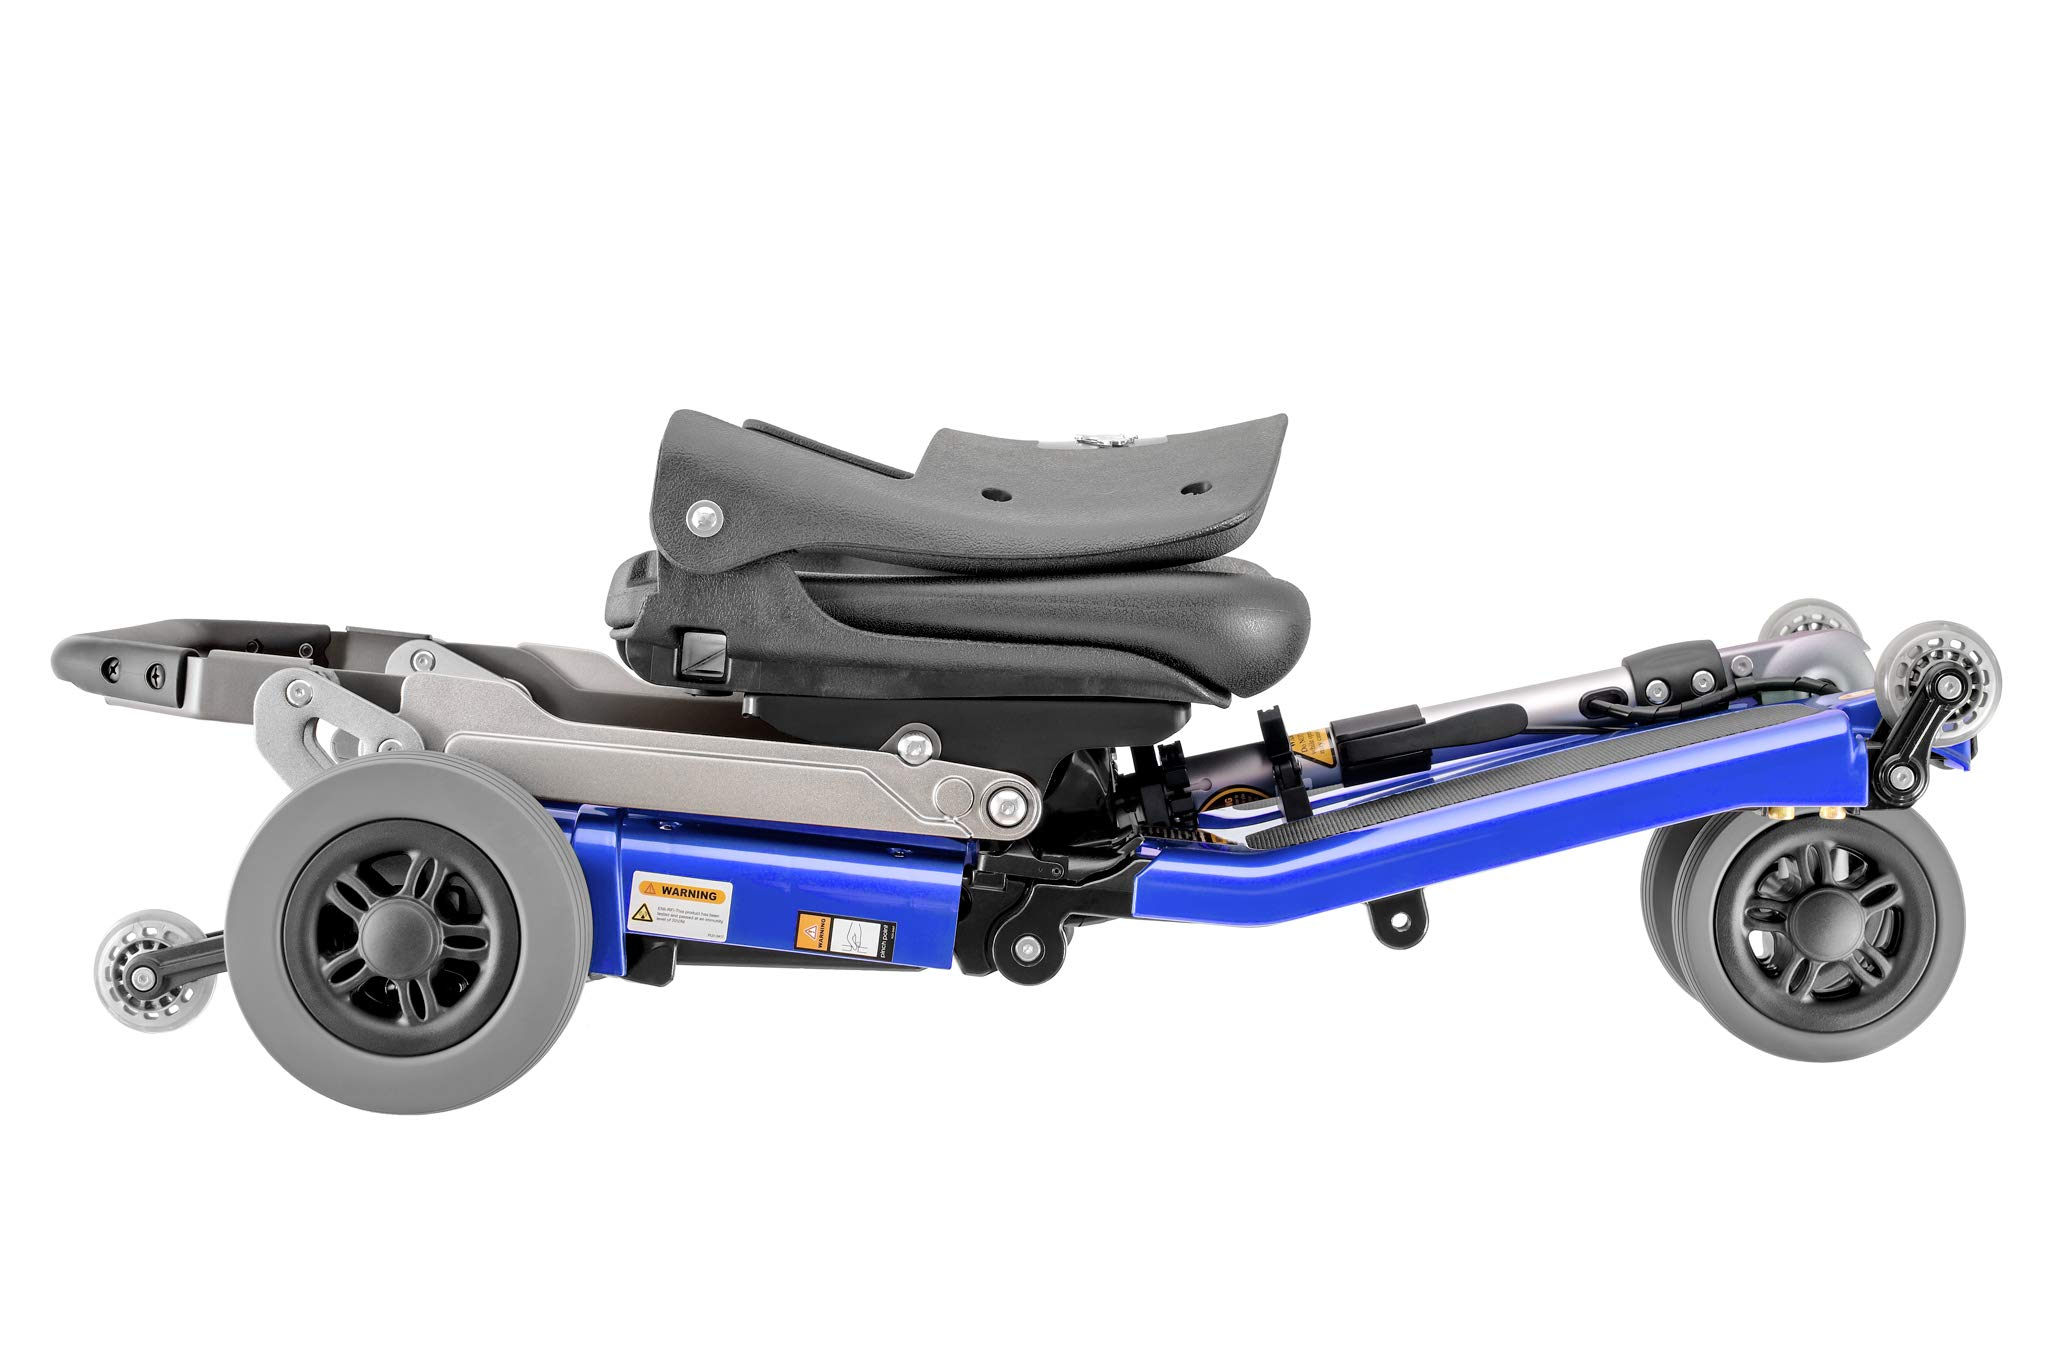 FreeRider USA Luggie Standard -Folding Mobility Scooter with Lithium-ion Battery for Adults and Seniors, Portable, Lightweight, Airline Approved, Blue by FreeRider USA